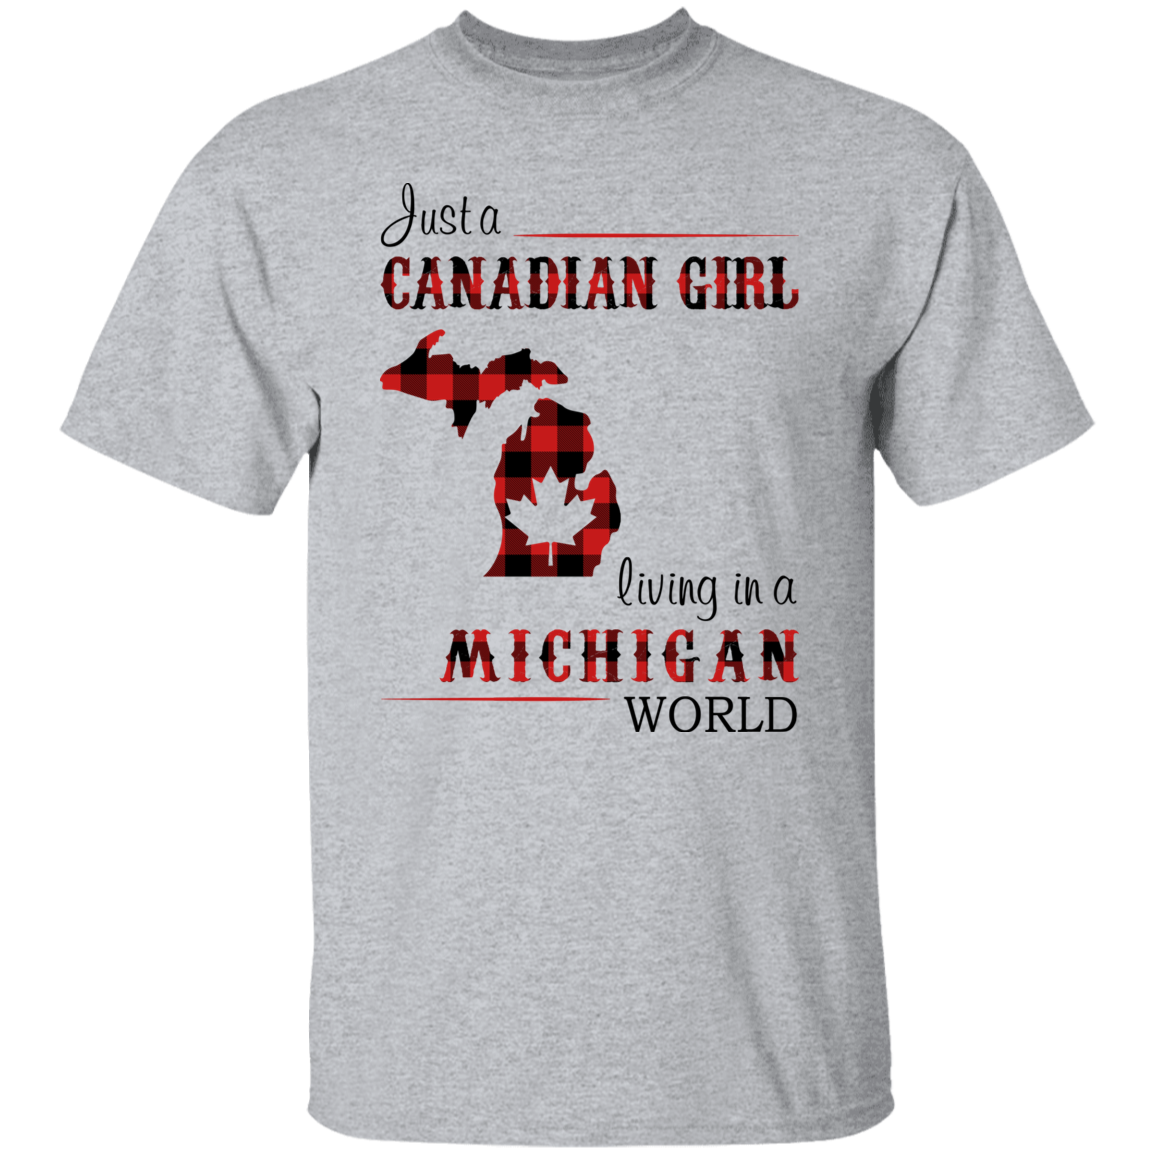 JUST A CANADIAN GIRL LIVING IN A MICHIGAN WORLD